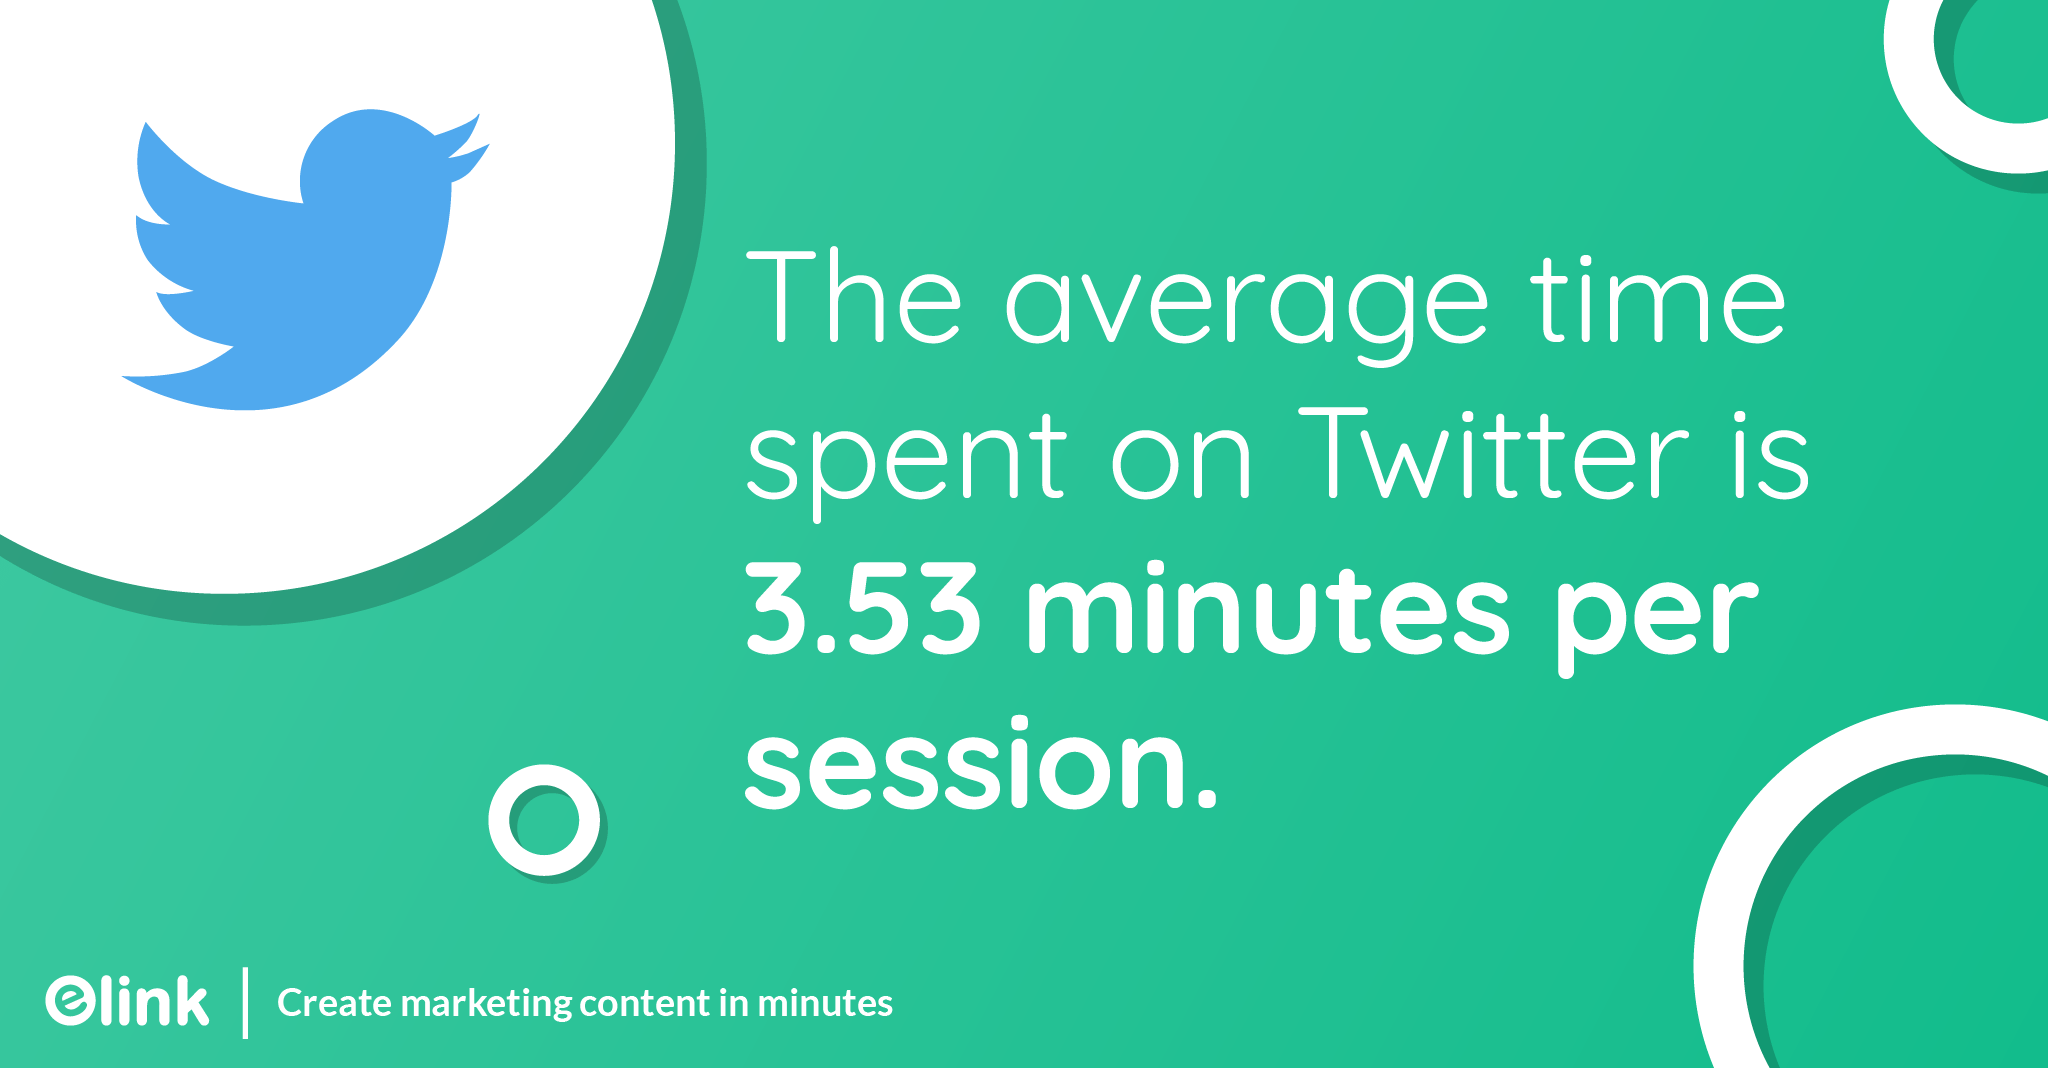 The average time spent on Twitter is 3.53 minutes per session